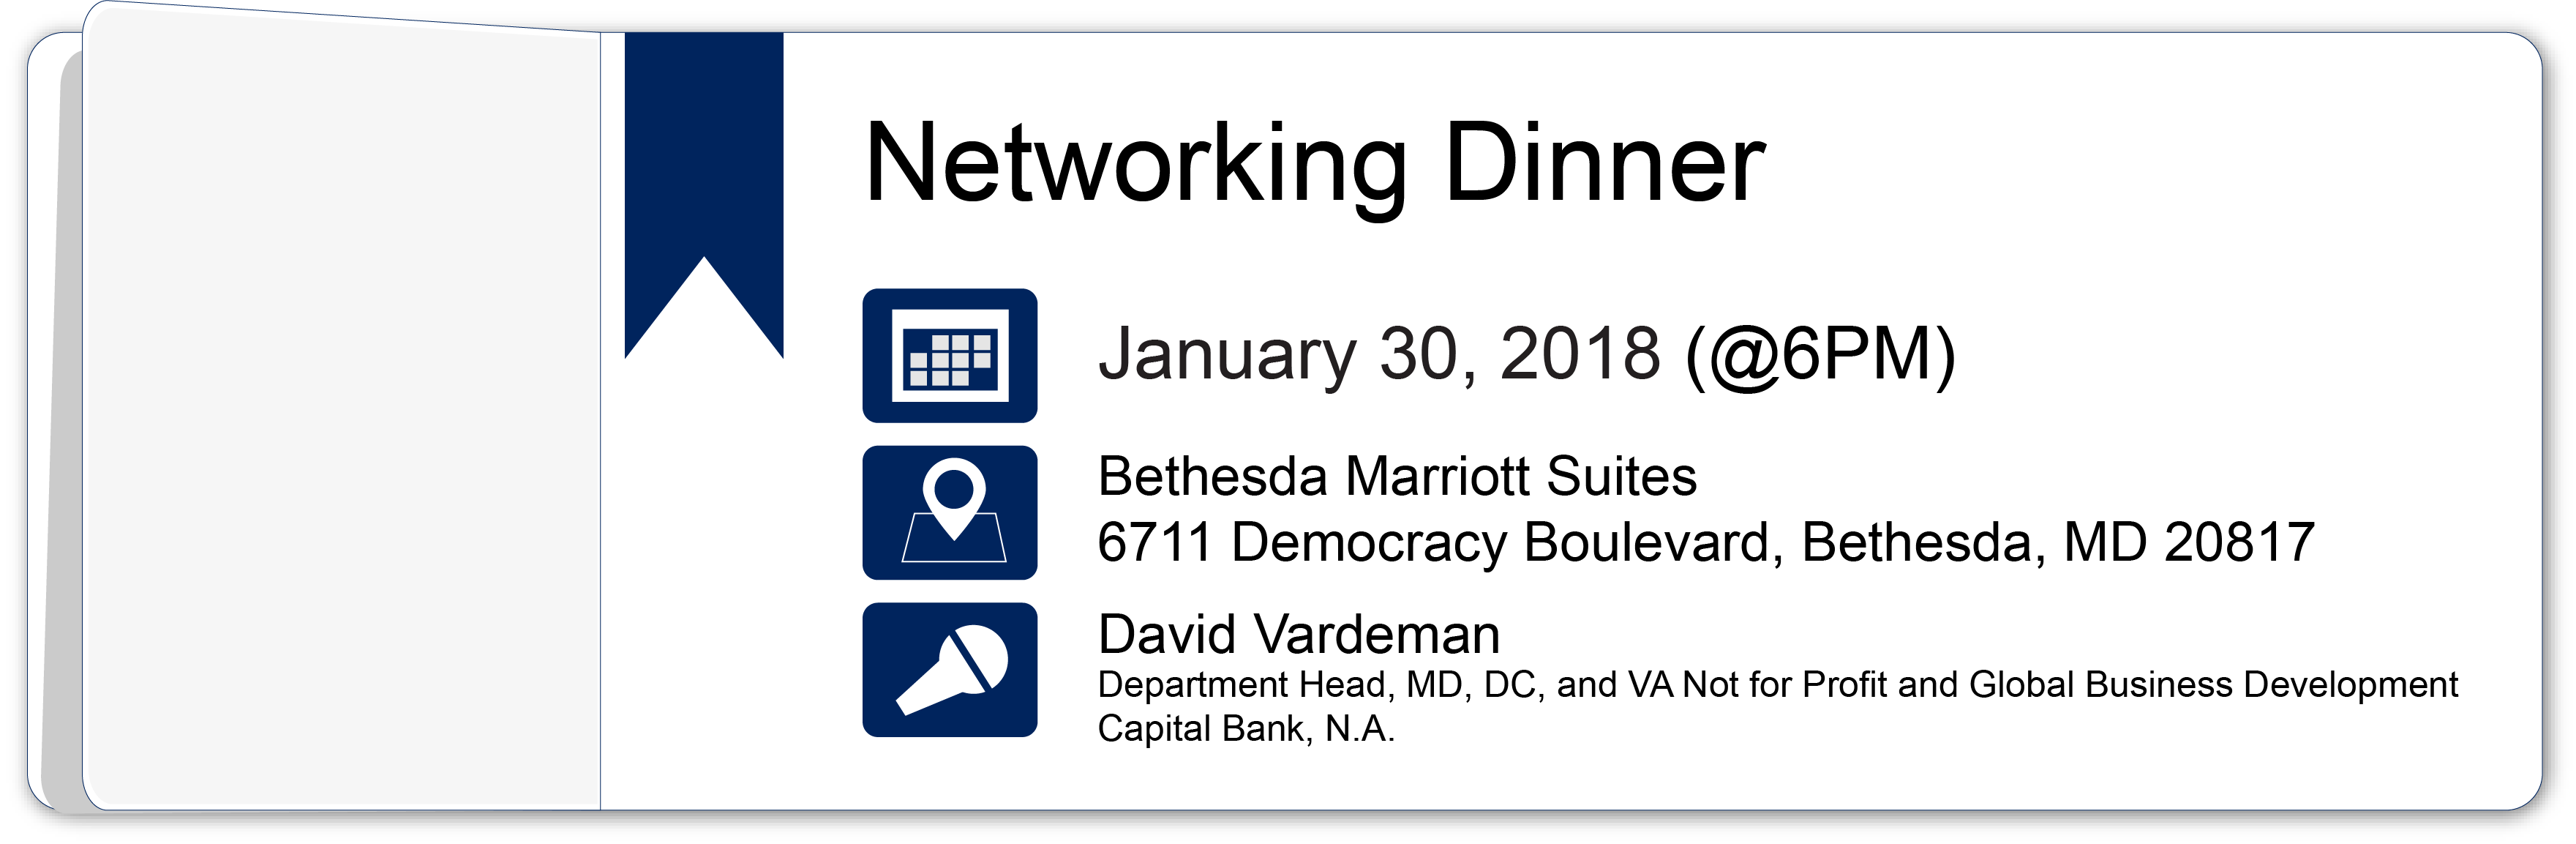 Networking Dinner – January 30, 2018